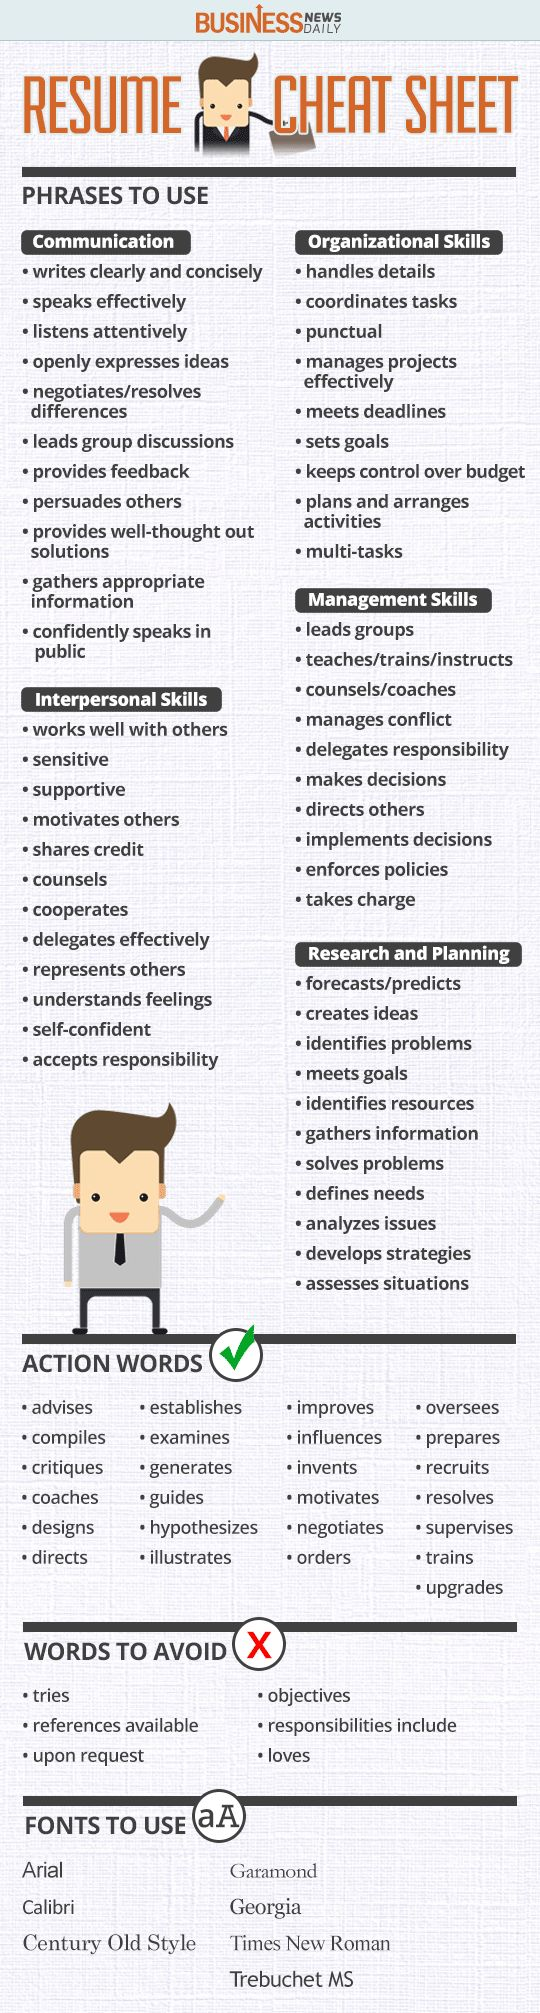 Opposenewapstandardsus  Unique  Ideas About Resume On Pinterest  Cv Format Resume Cv And  With Excellent Resume Cheat Sheet Infographic Andrews Almost Done With A Complete Unit On Employment Which With Charming Bartender Resume Template Also Customer Service Specialist Resume In Addition Resume Education In Progress And Quick Learner Resume As Well As Email To Send Resume Additionally Margins For A Resume From Pinterestcom With Opposenewapstandardsus  Excellent  Ideas About Resume On Pinterest  Cv Format Resume Cv And  With Charming Resume Cheat Sheet Infographic Andrews Almost Done With A Complete Unit On Employment Which And Unique Bartender Resume Template Also Customer Service Specialist Resume In Addition Resume Education In Progress From Pinterestcom